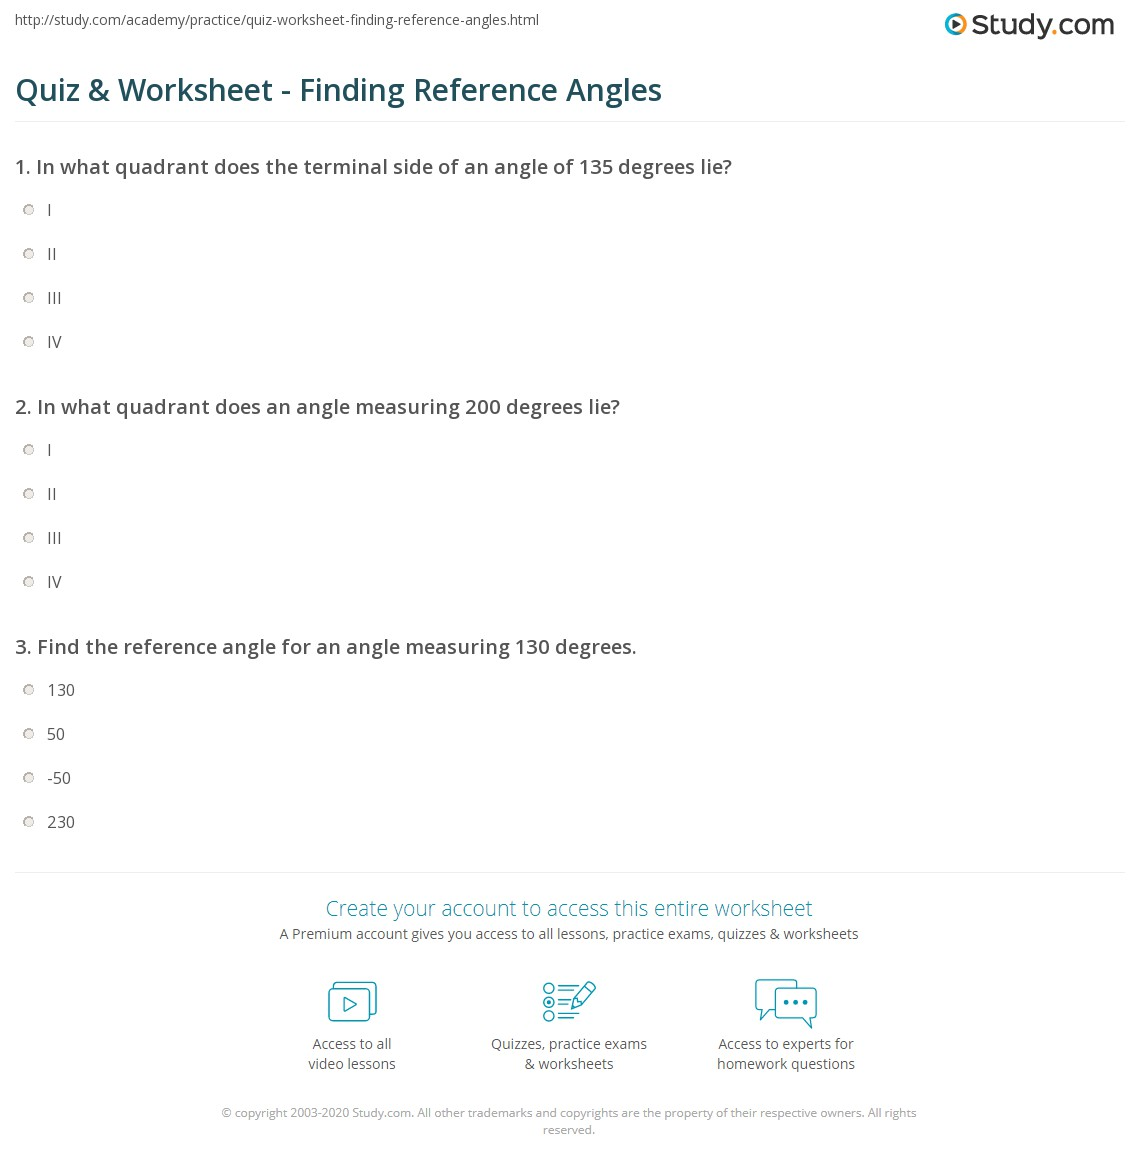 Quiz & Worksheet - Finding Reference Angles | Study.com